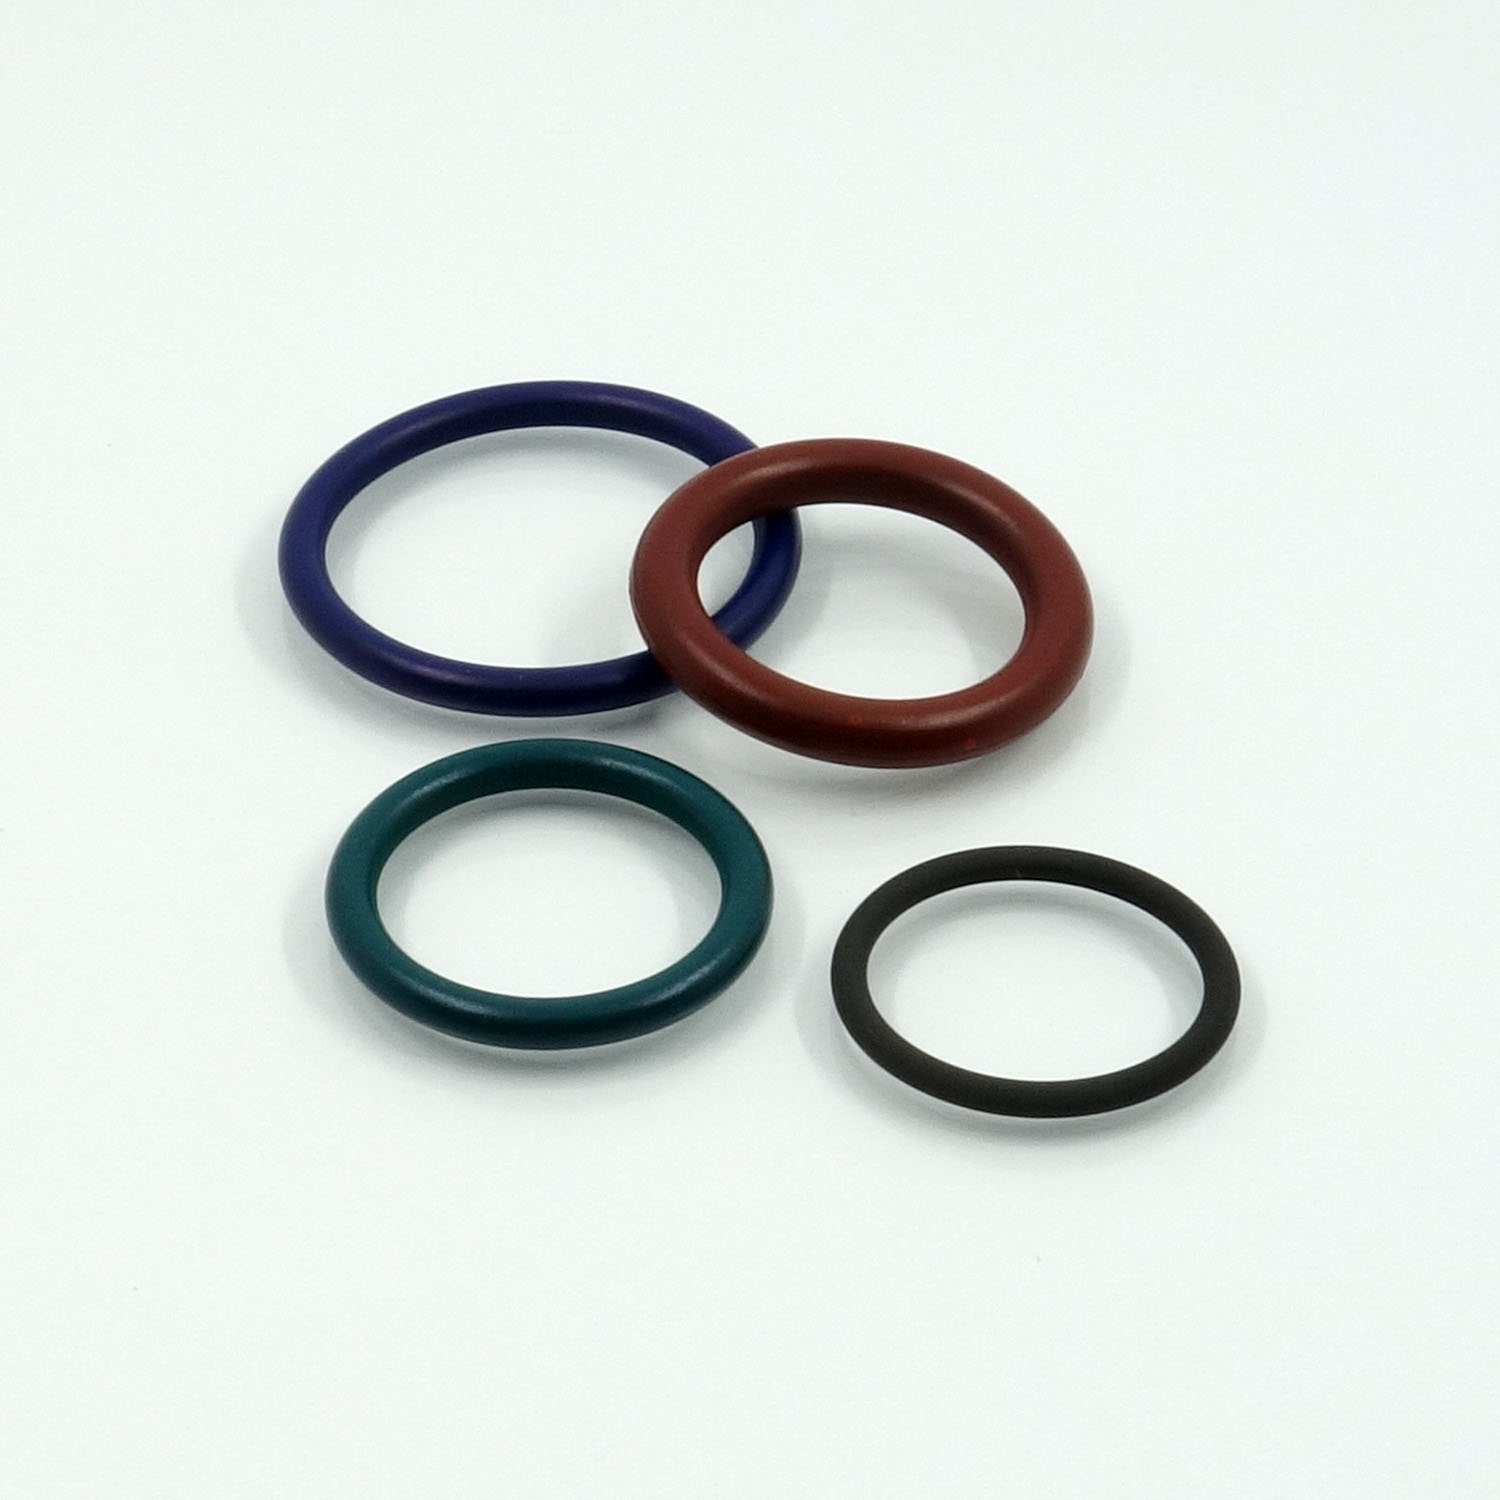 INTERNAL O-RING SEAL KIT